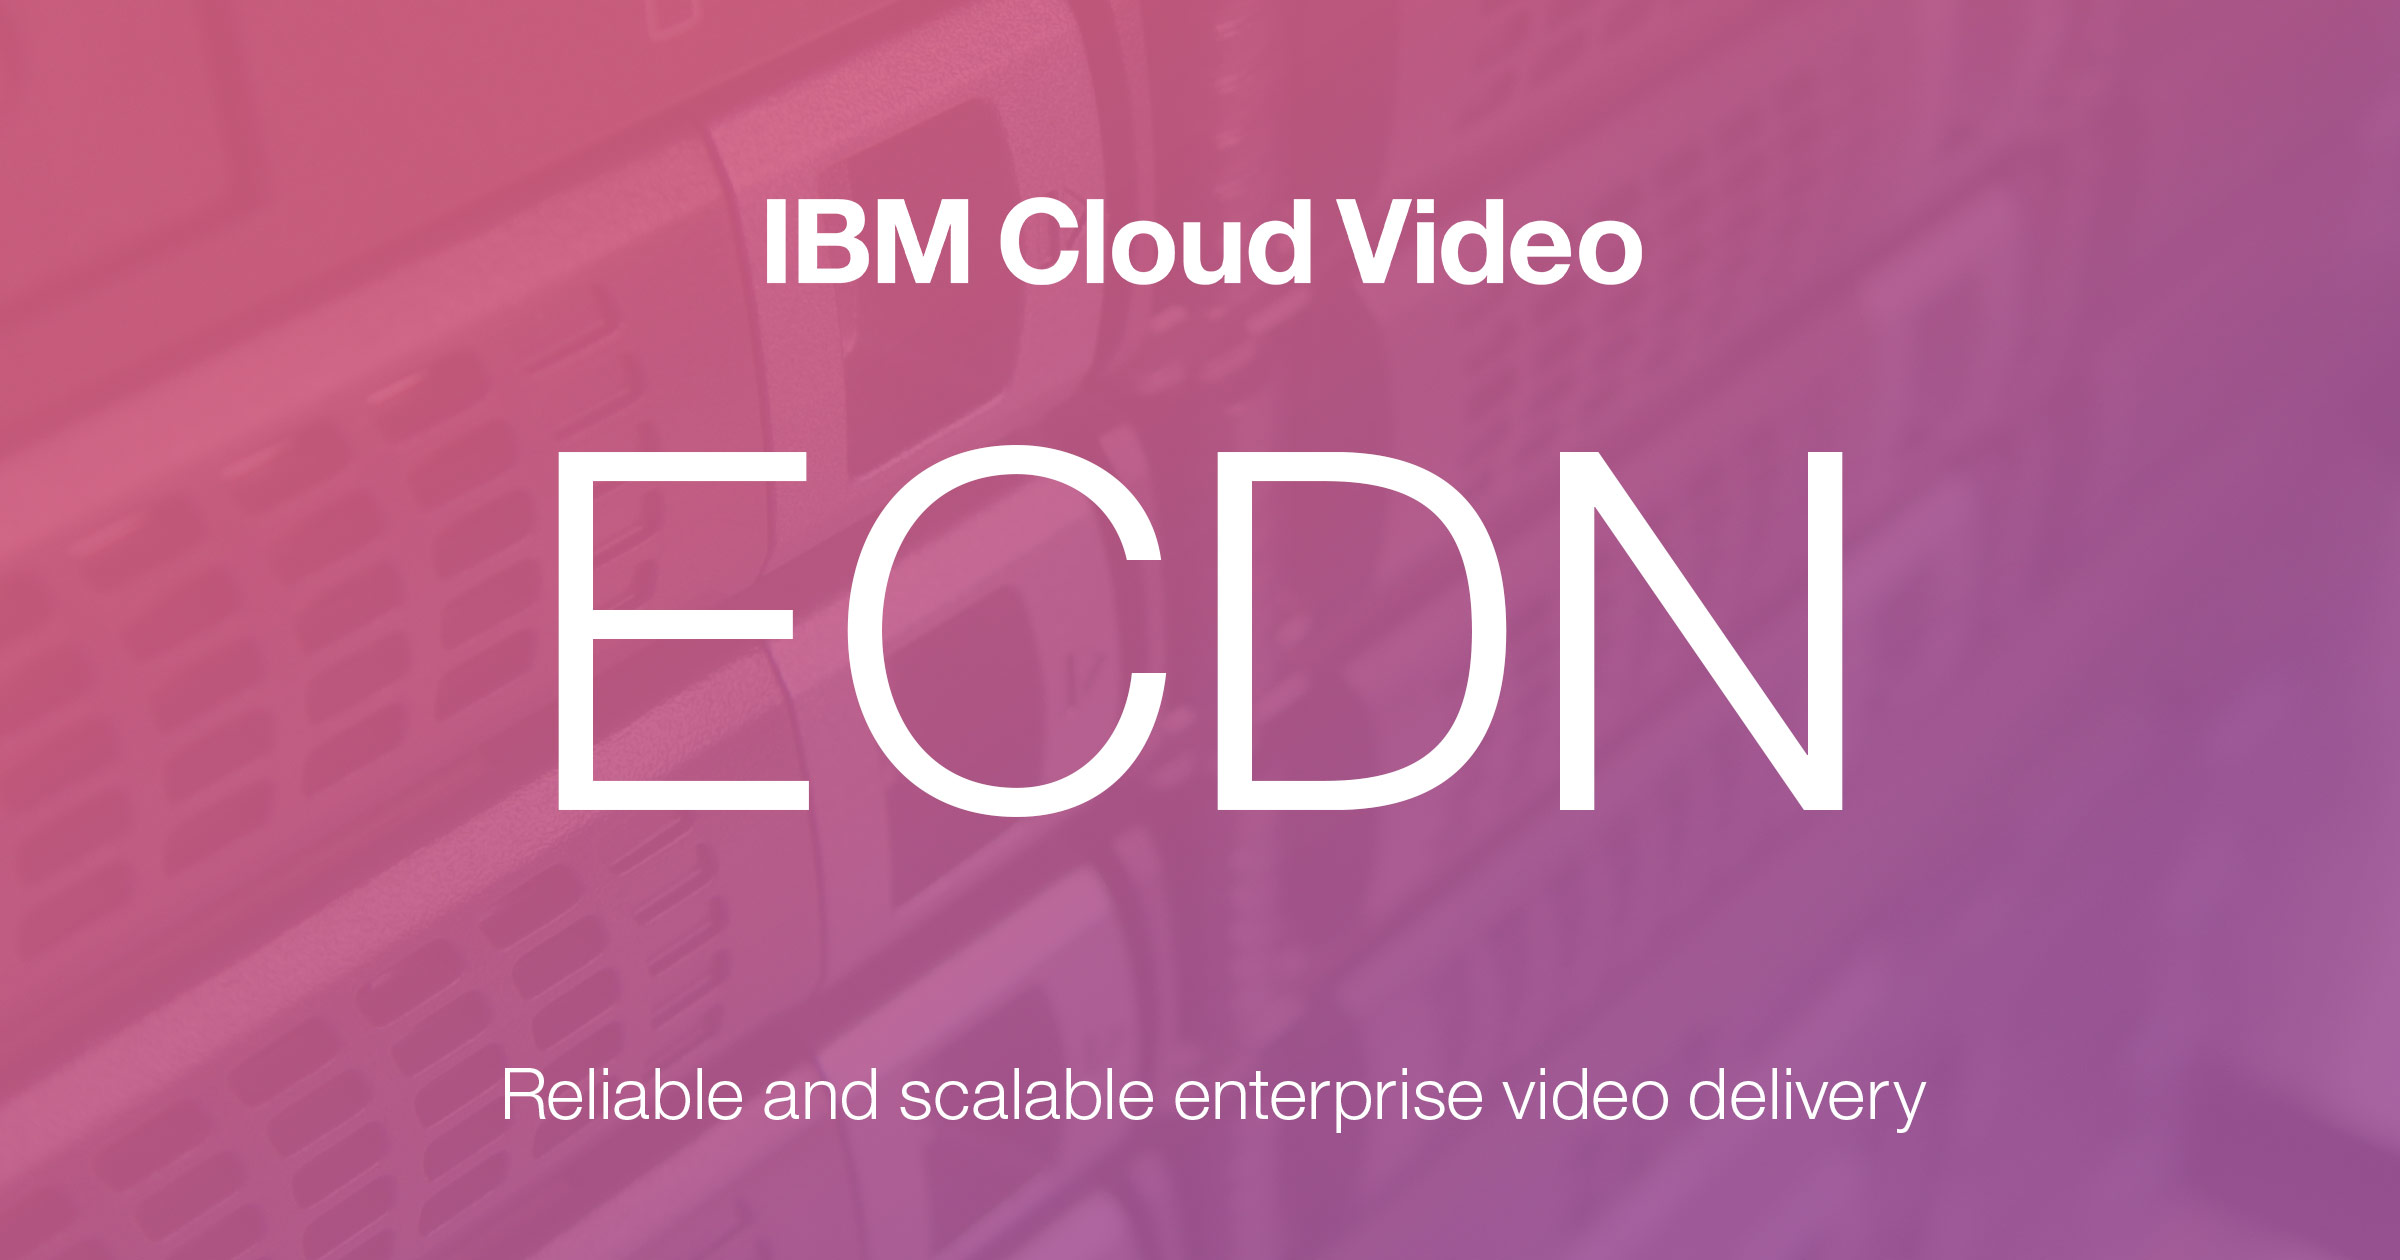 IBM Cloud Video ECDN: Enterprise Content Delivery Network